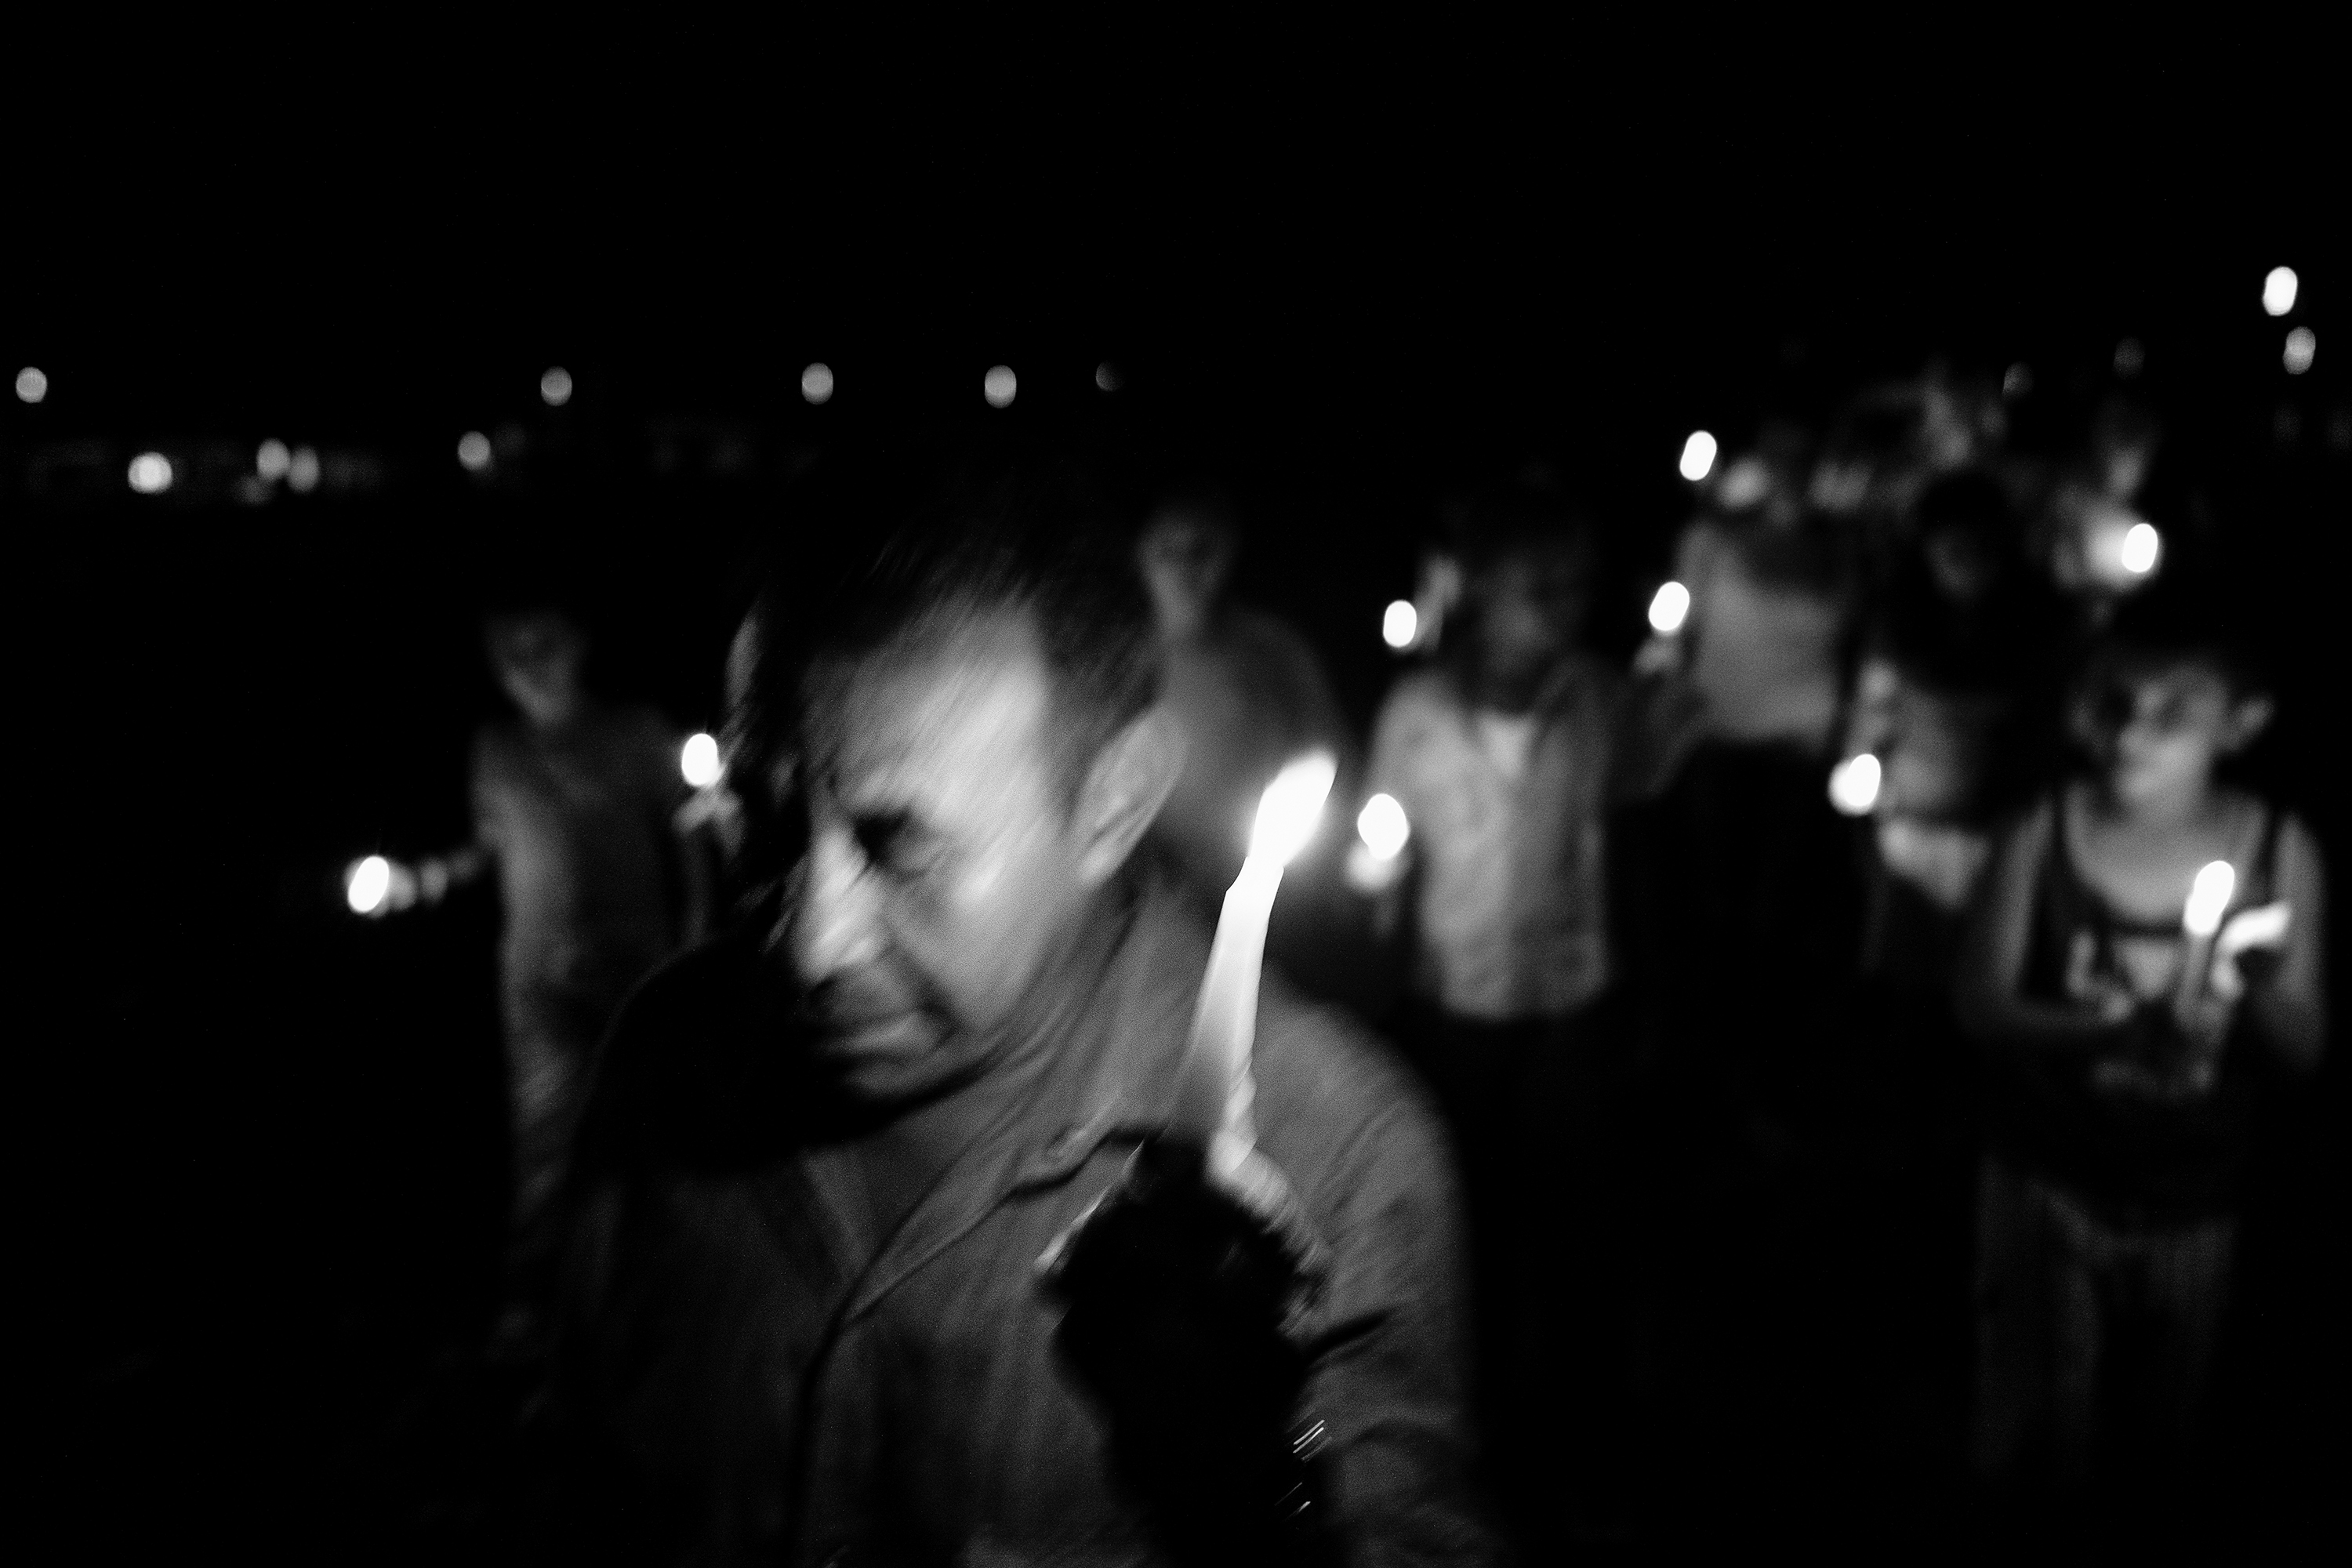 Holding candles, members of the community from Re- moiinos del Caguan attend a vigil for peace. Since the unilateral ceasefire announcement of the FARC, there are signs of the re-emergence of paramilitary units in the region, Caqueta, Colombia, April 2016.